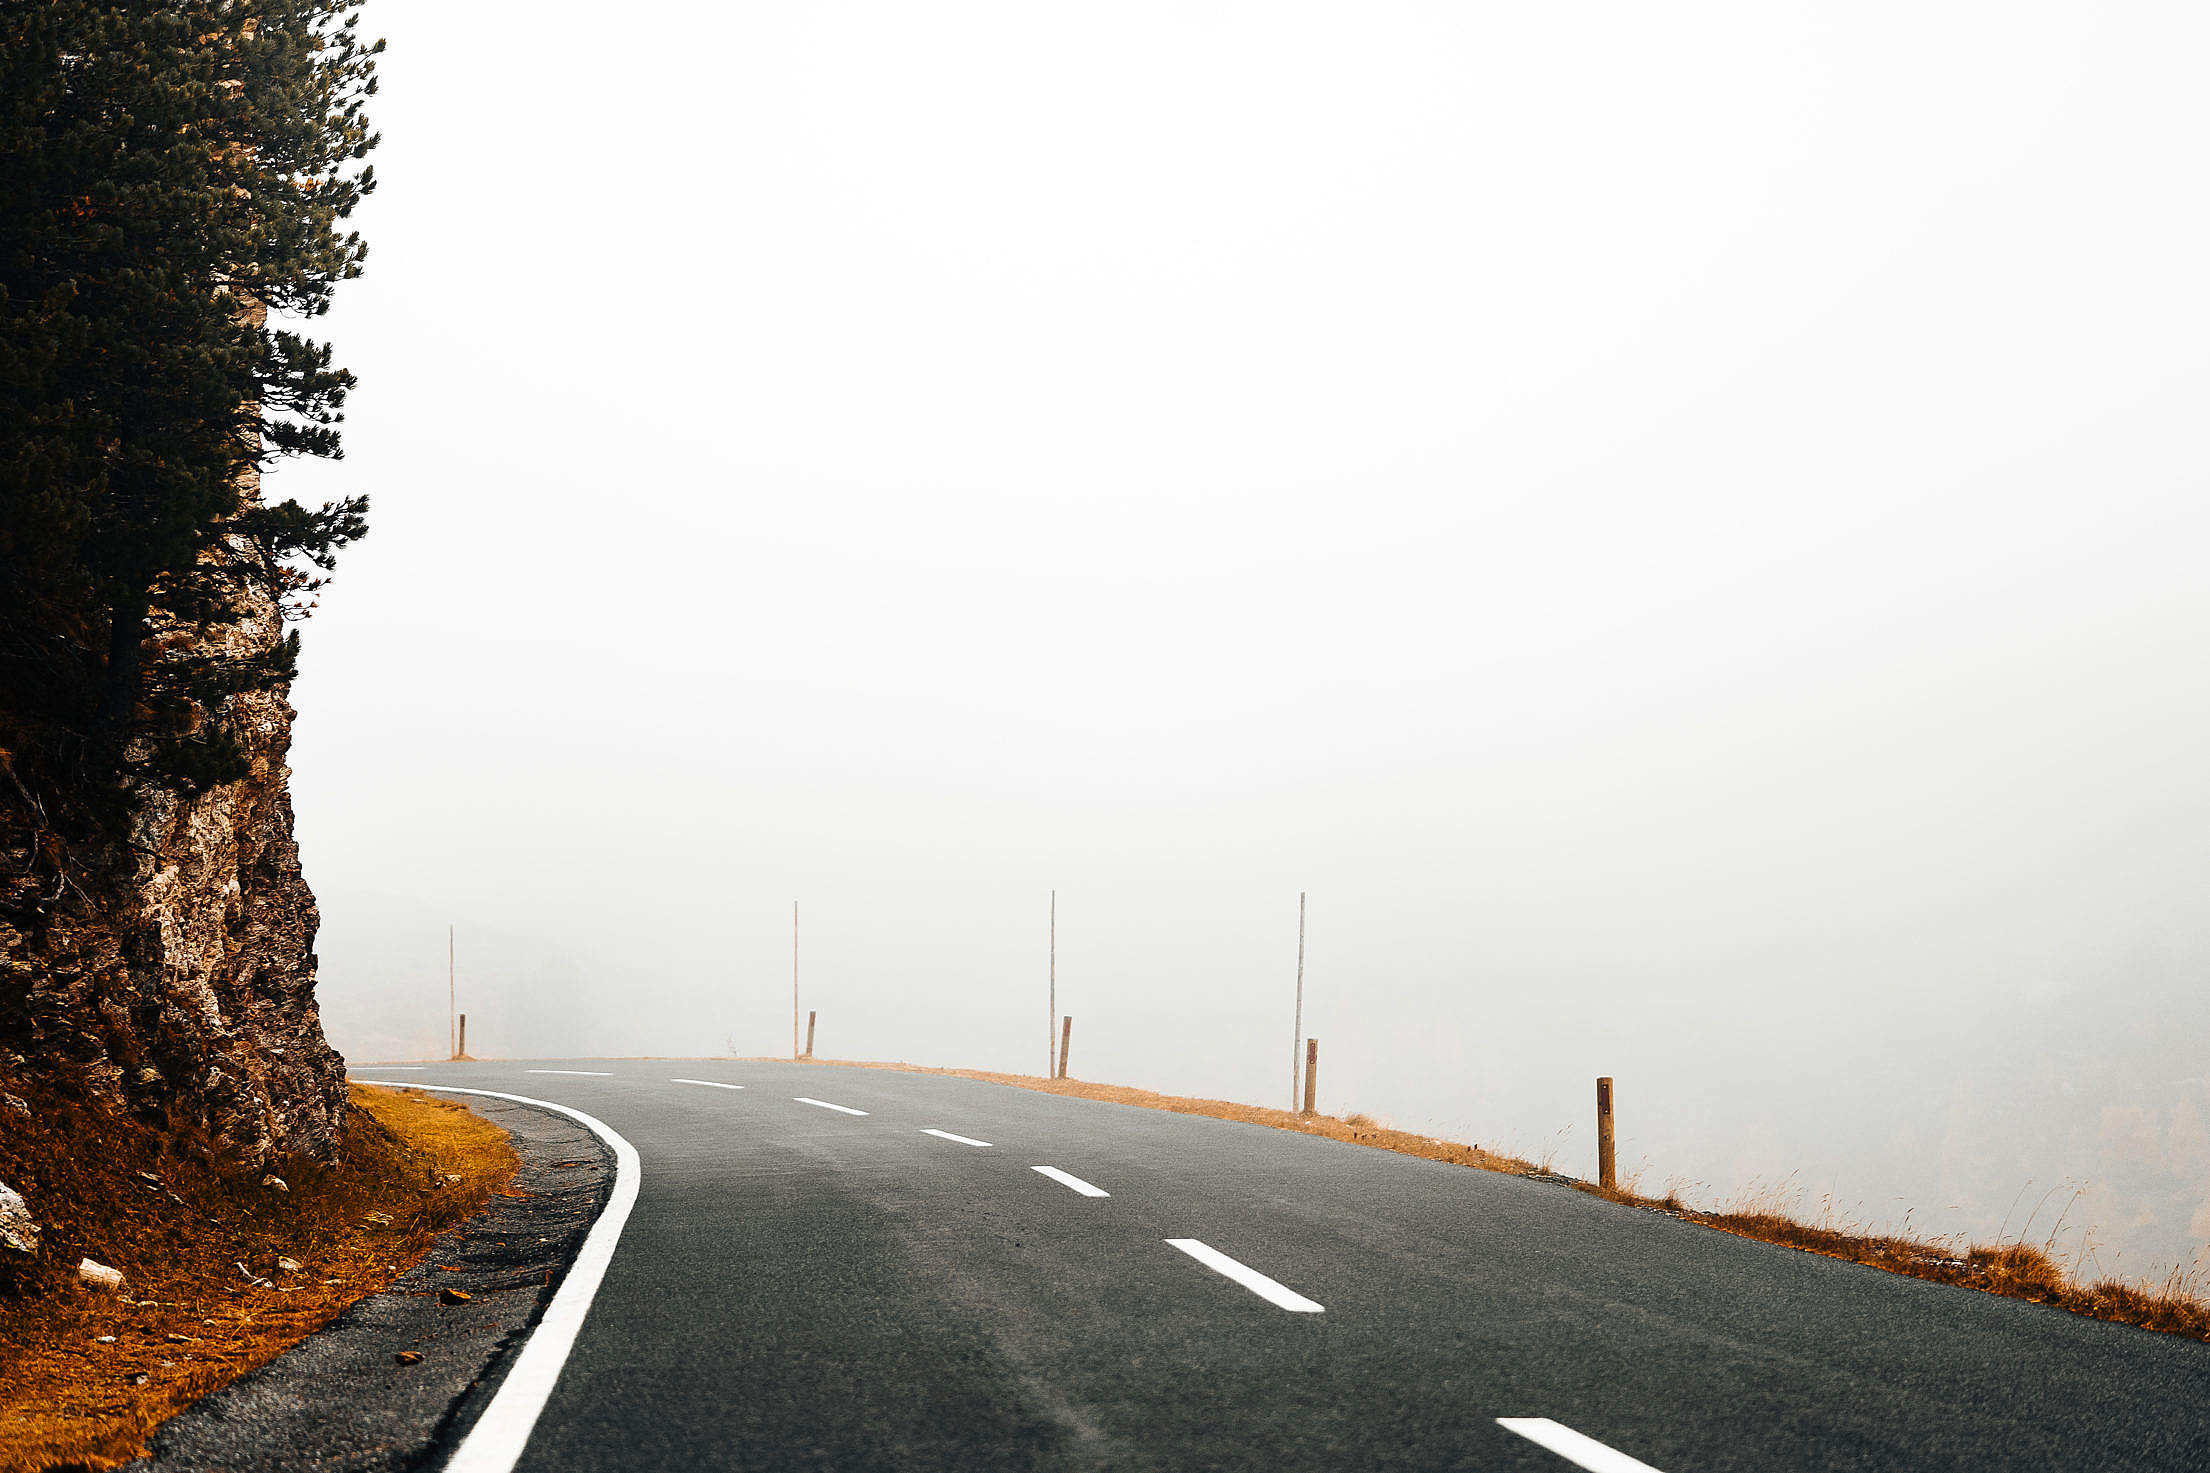 The Road in The Fog Free Stock Photo